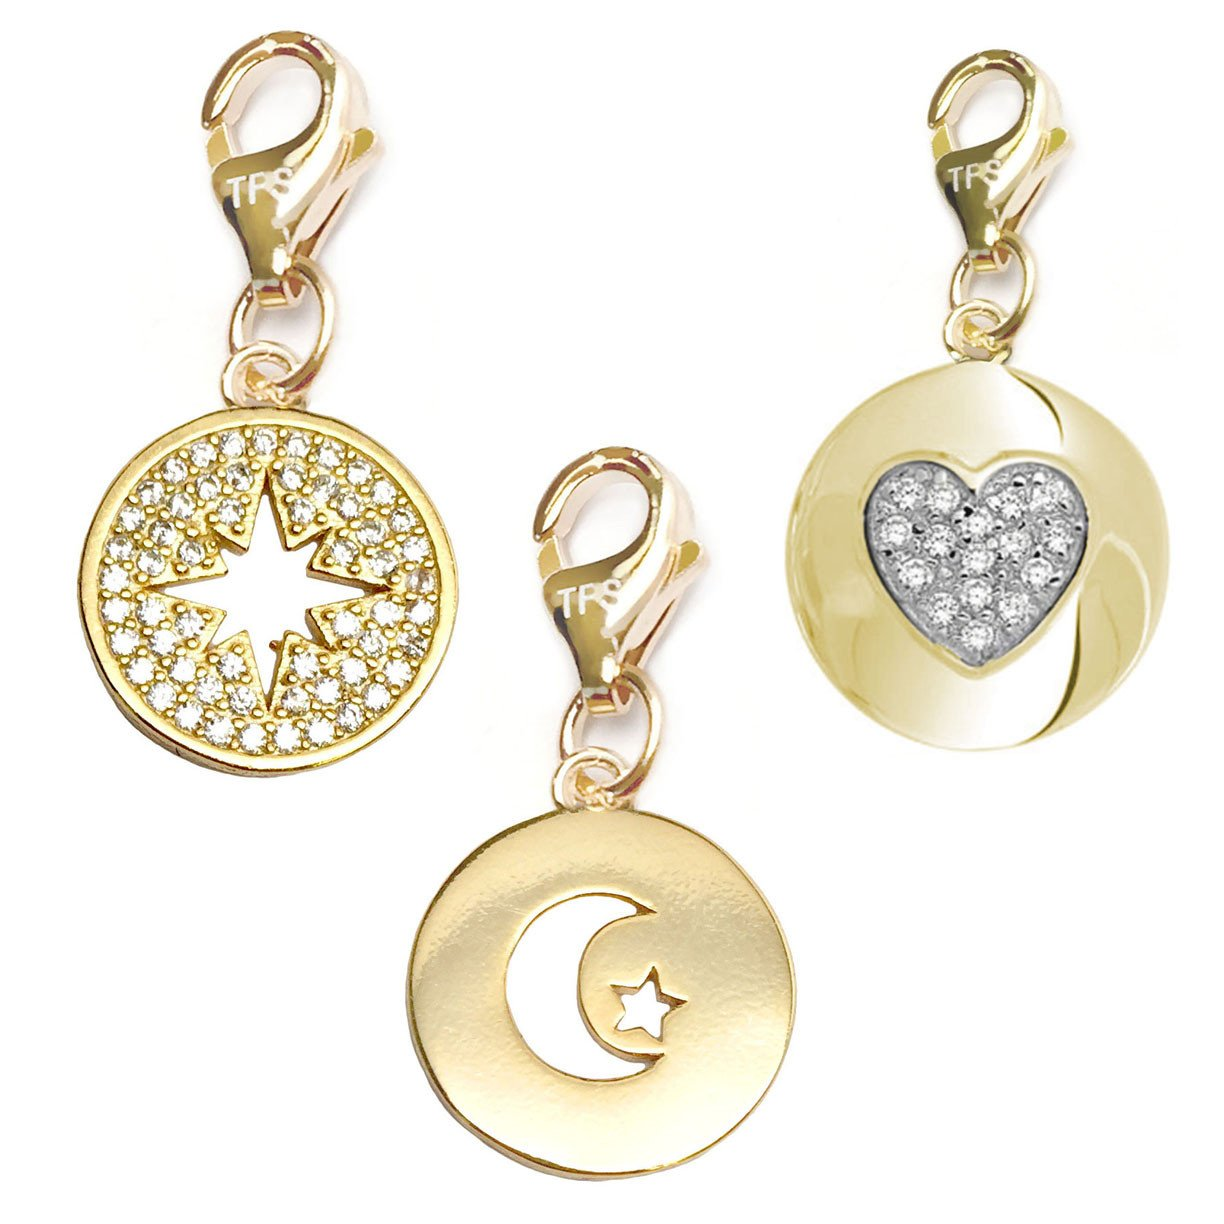 Starburst Heart Disc 14k Gold Over Brass Clip-On Charm Set TFS Jewelry Moon /& Star Disc